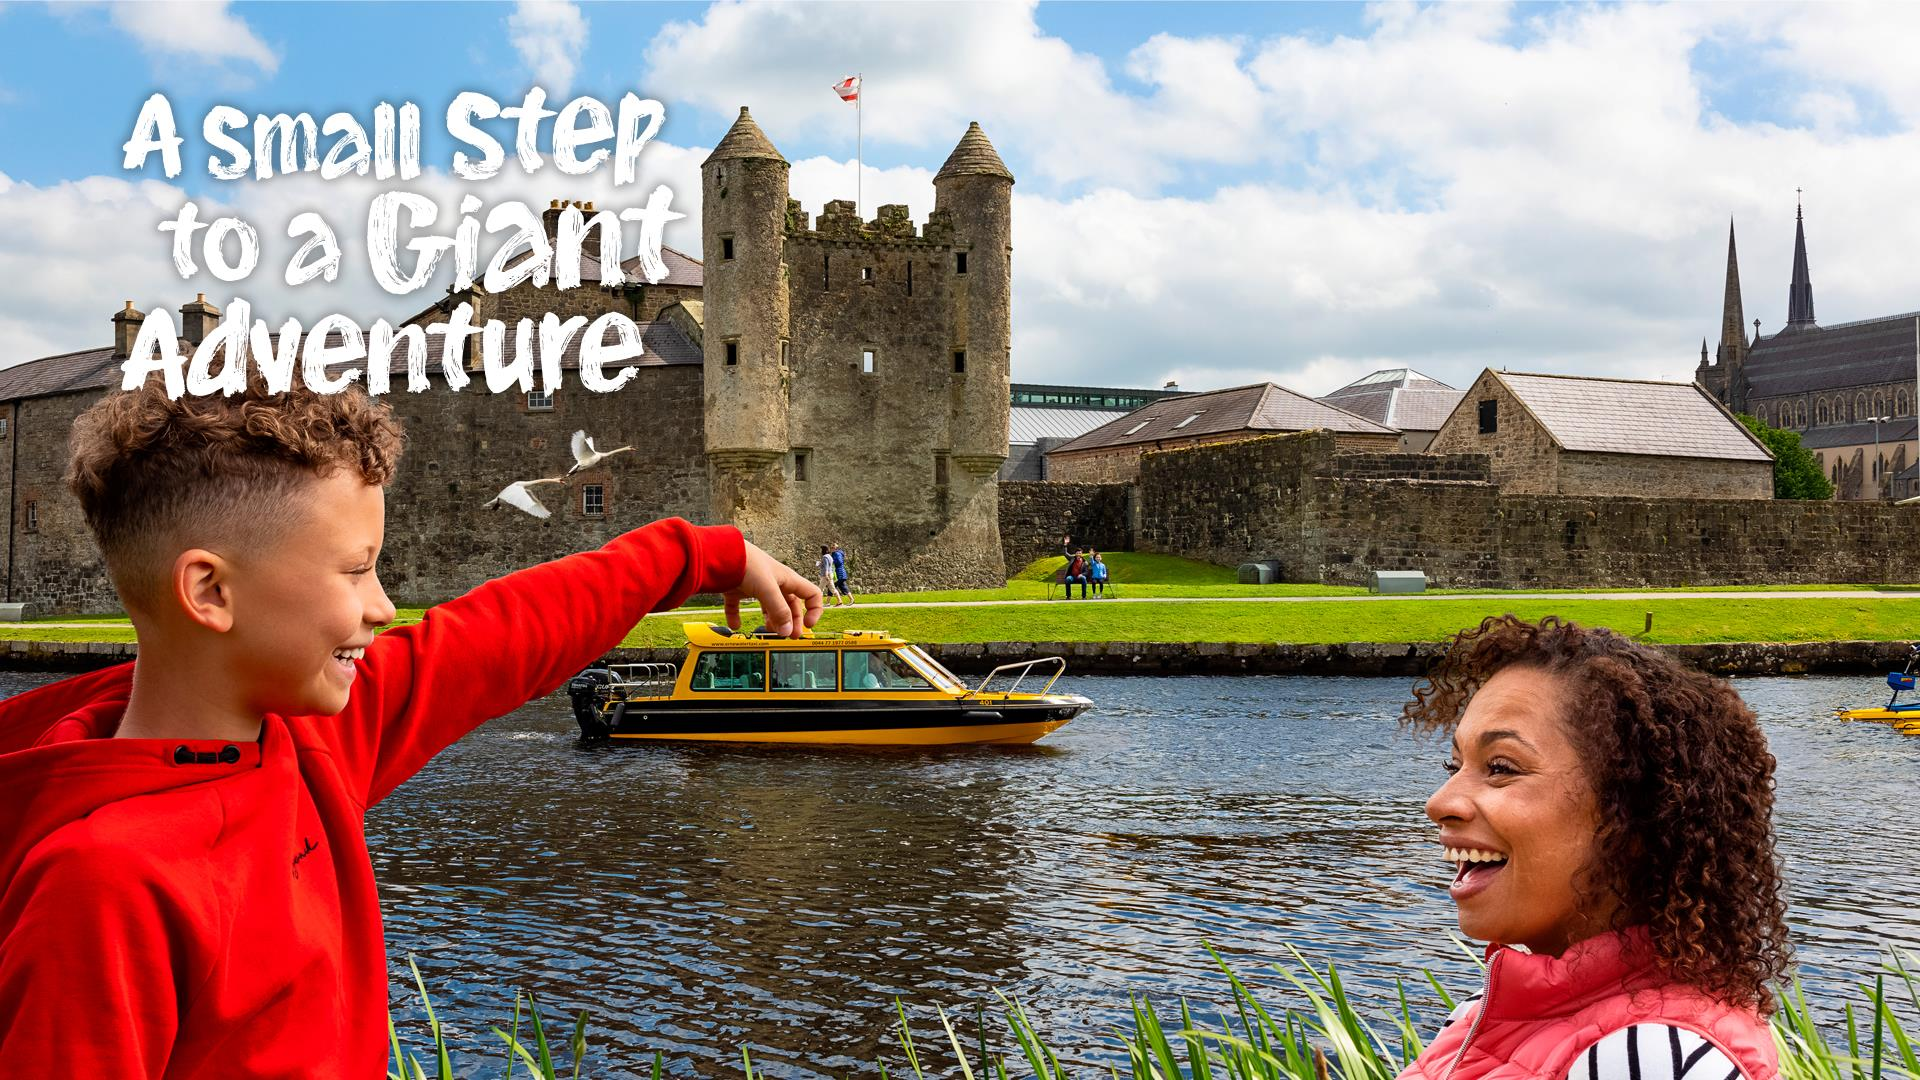 Image shows a boat in front of Enniskillen Castle with a boy and lady in the foreground looking like they're touching the boat